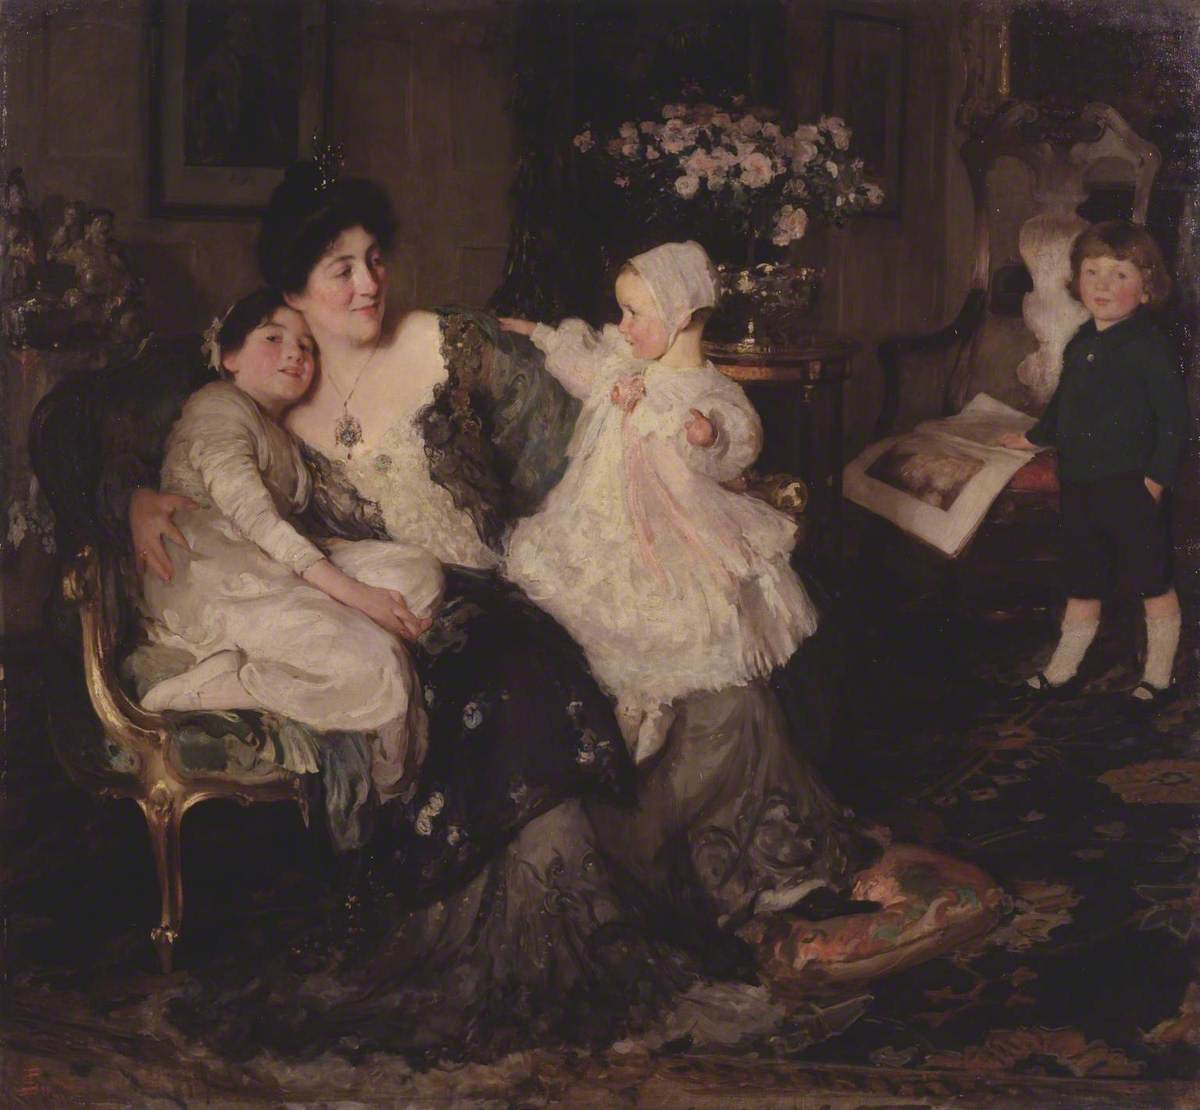 A Family Group: The Artist's Wife and Children: 'Papa Painting!'